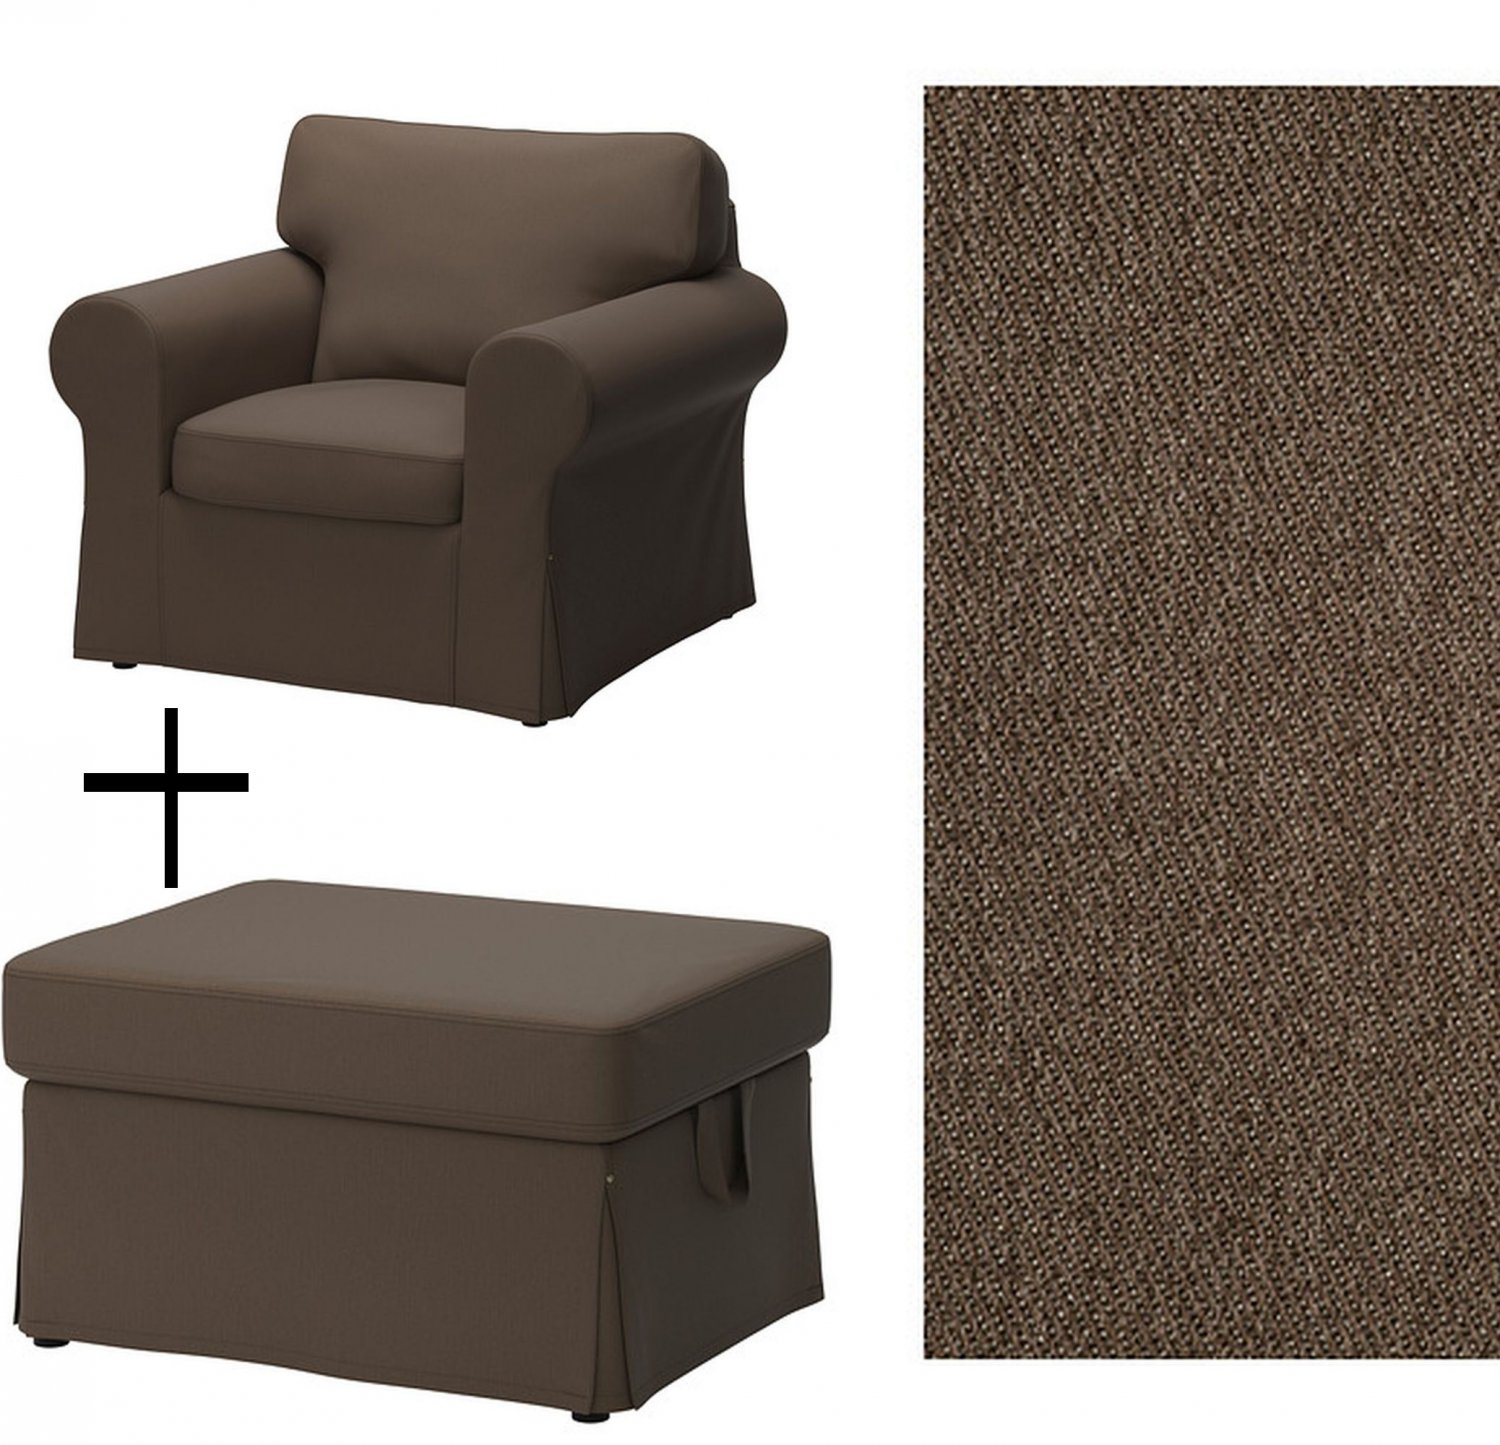 Ikea Ektorp Armchair And Footstool Covers Slipcovers